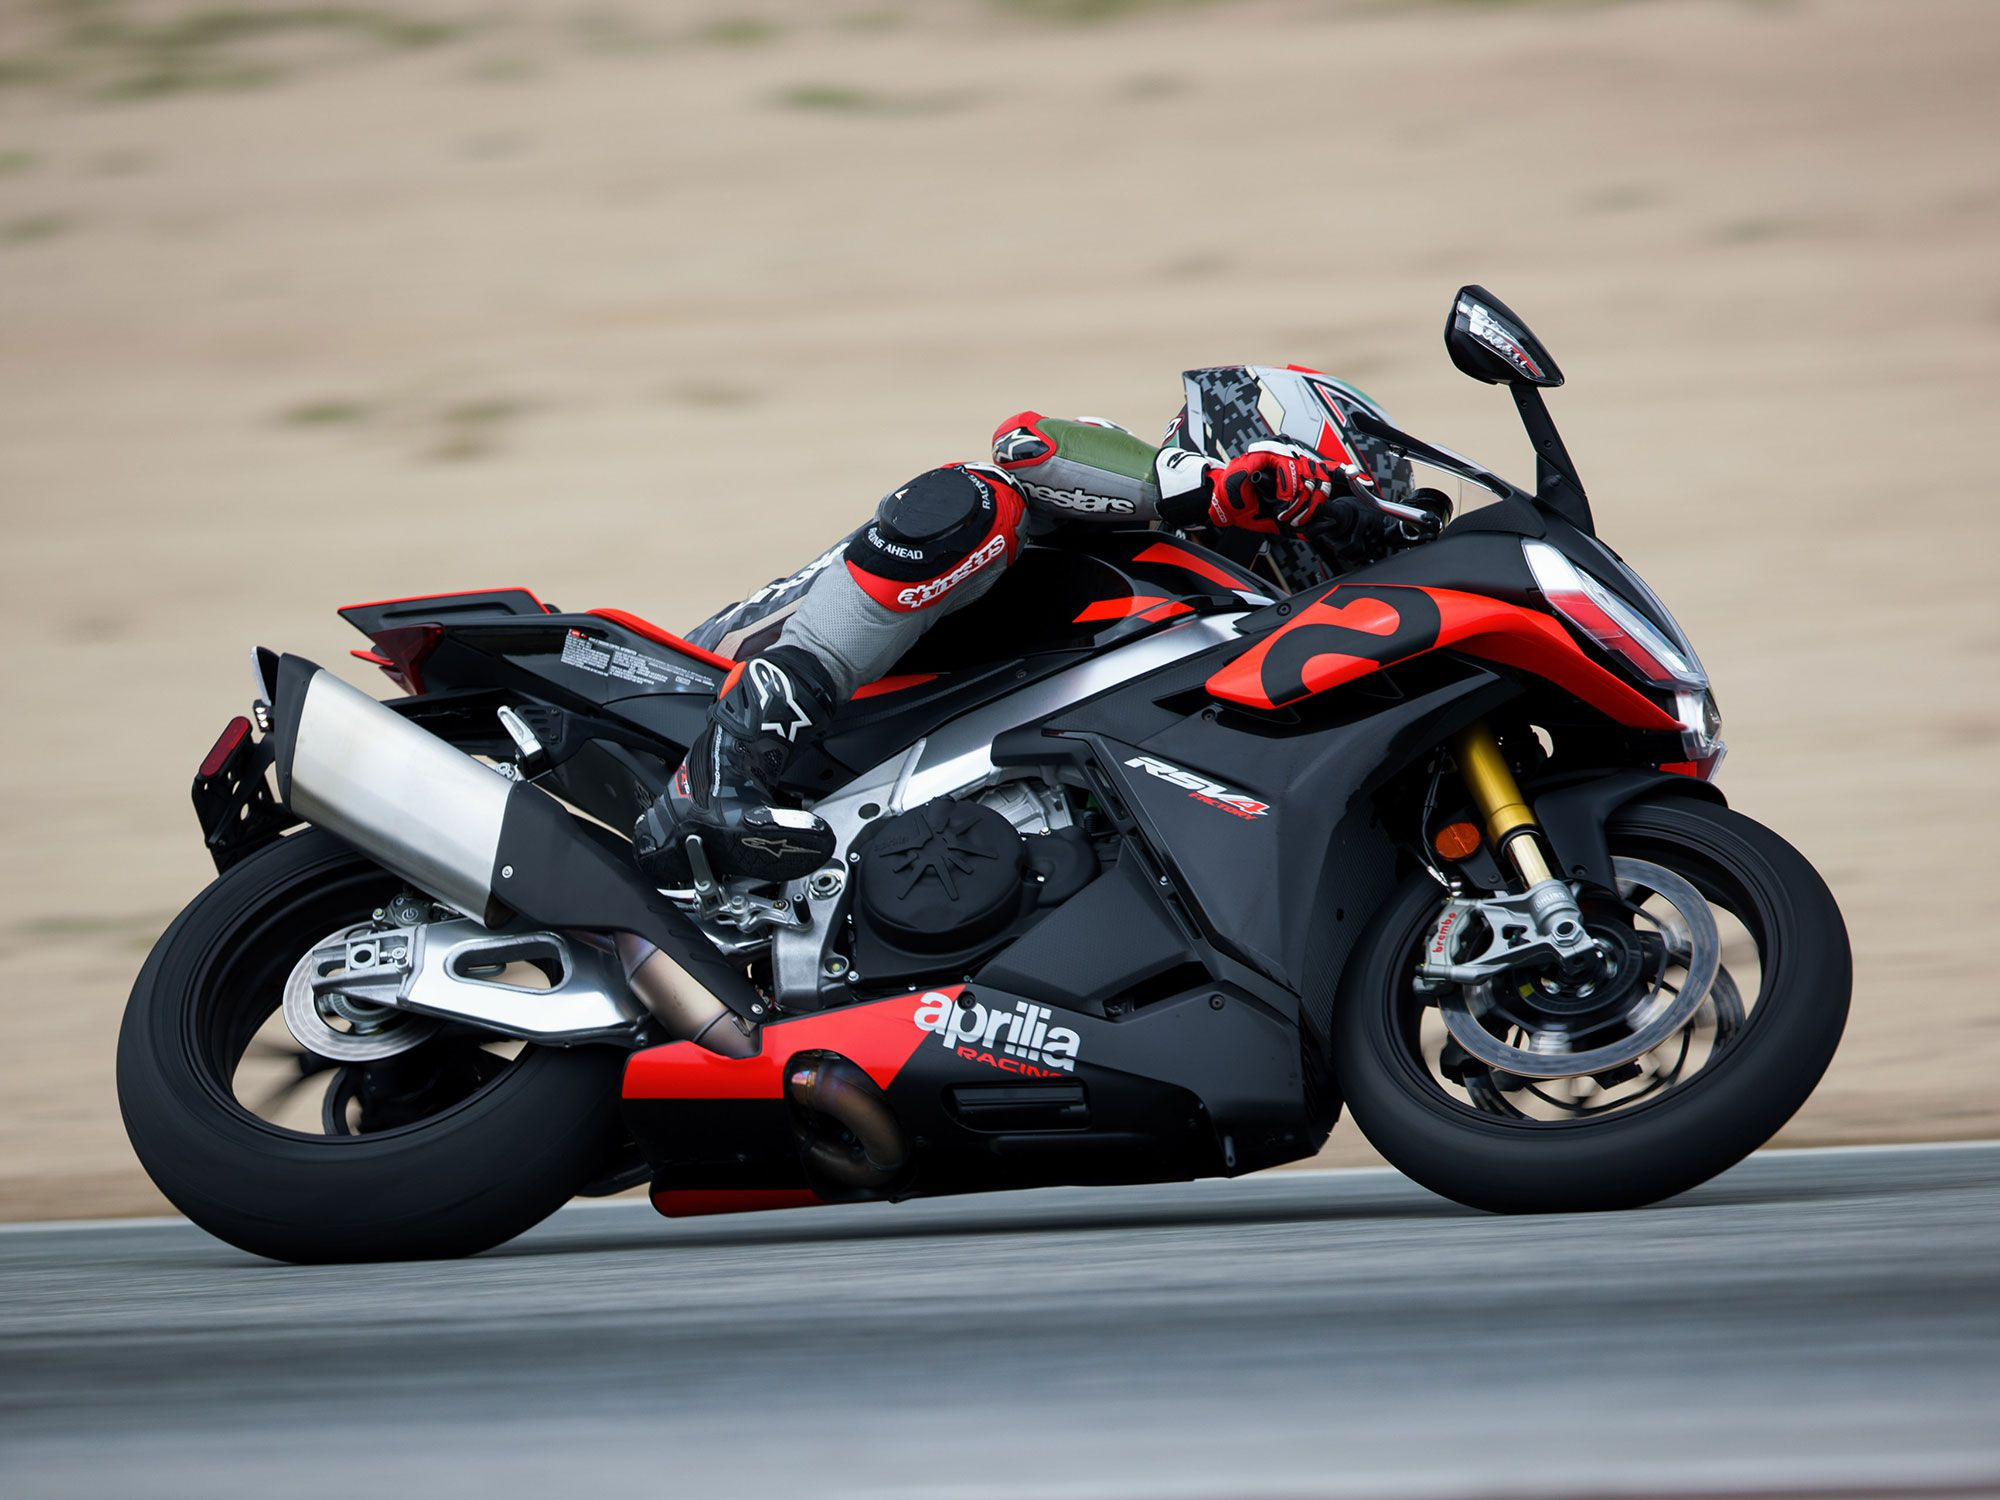 A lighter yet more rigid swingarm works in unison with the more powerful engine delivering astounding drive grip off turns.